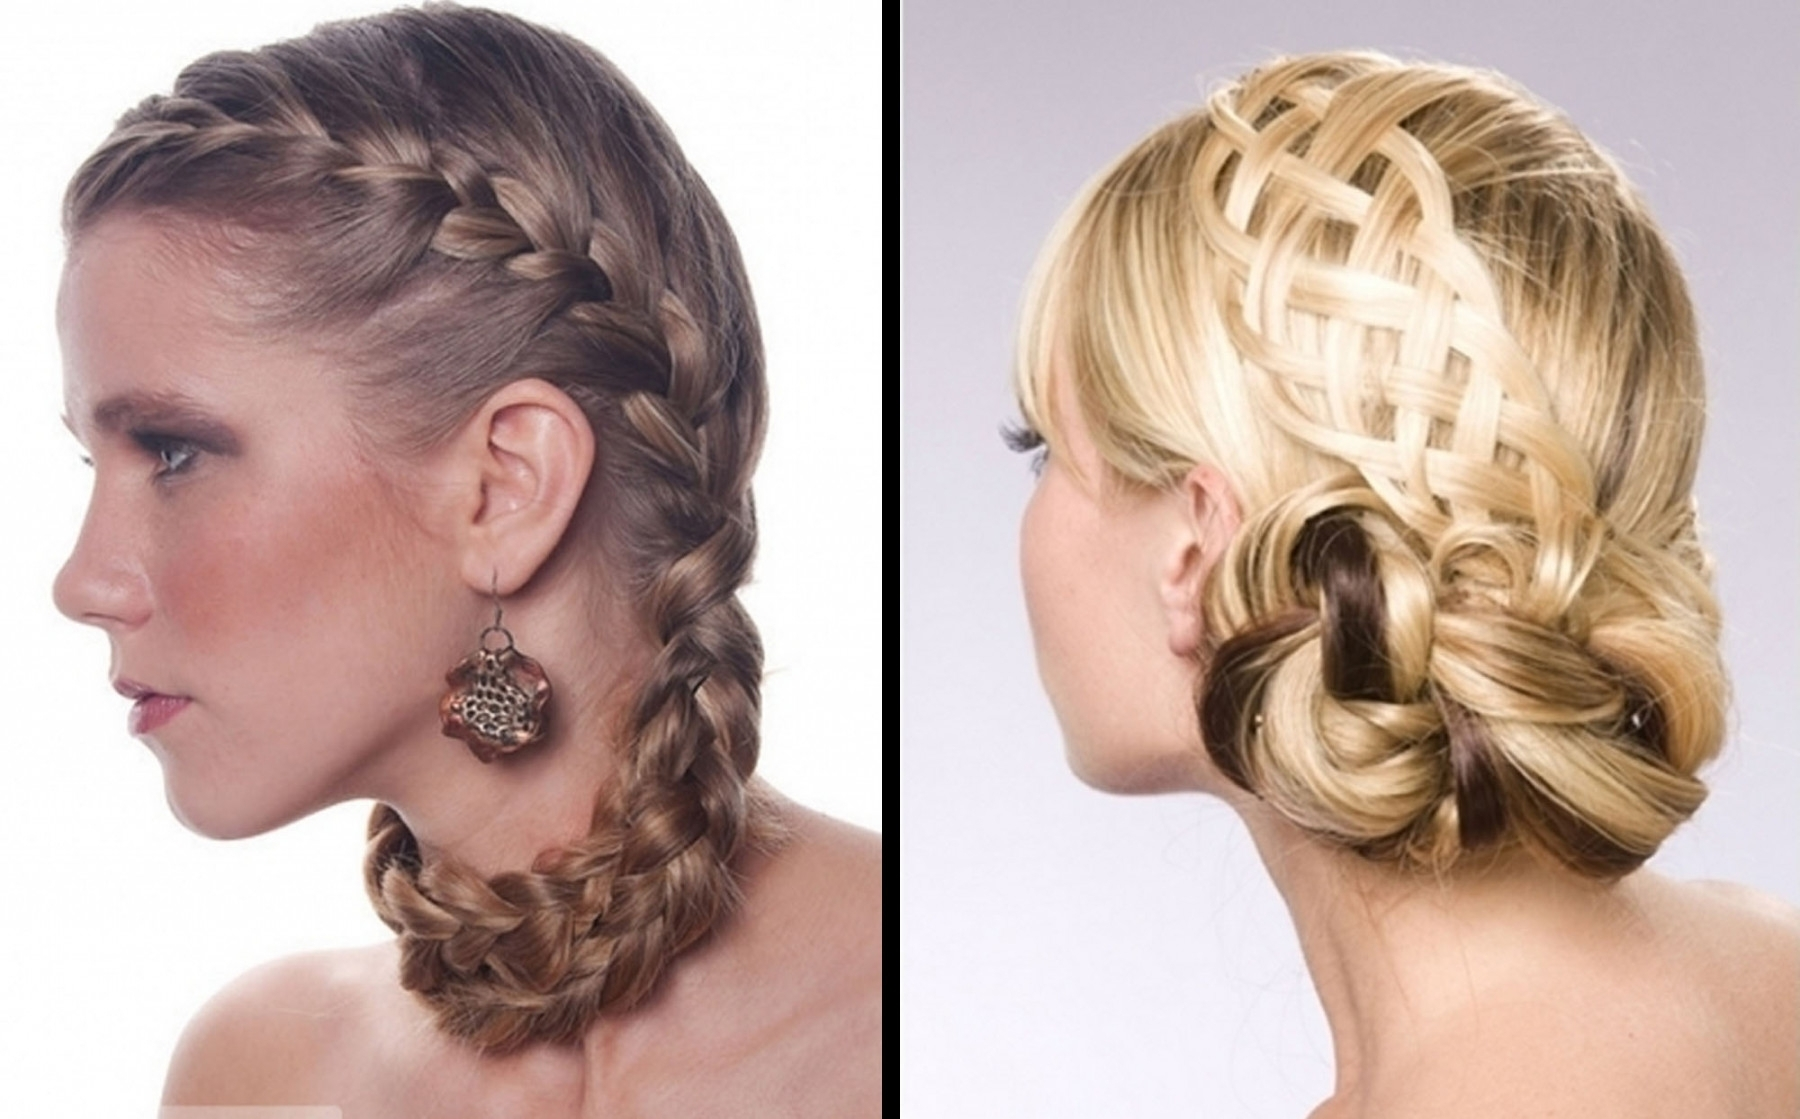 Braided Updo Hairstyles Hair Salon Formal For Women | Medium Hair Pertaining To Fancy Updo Hairstyles For Medium Hair (View 7 of 15)